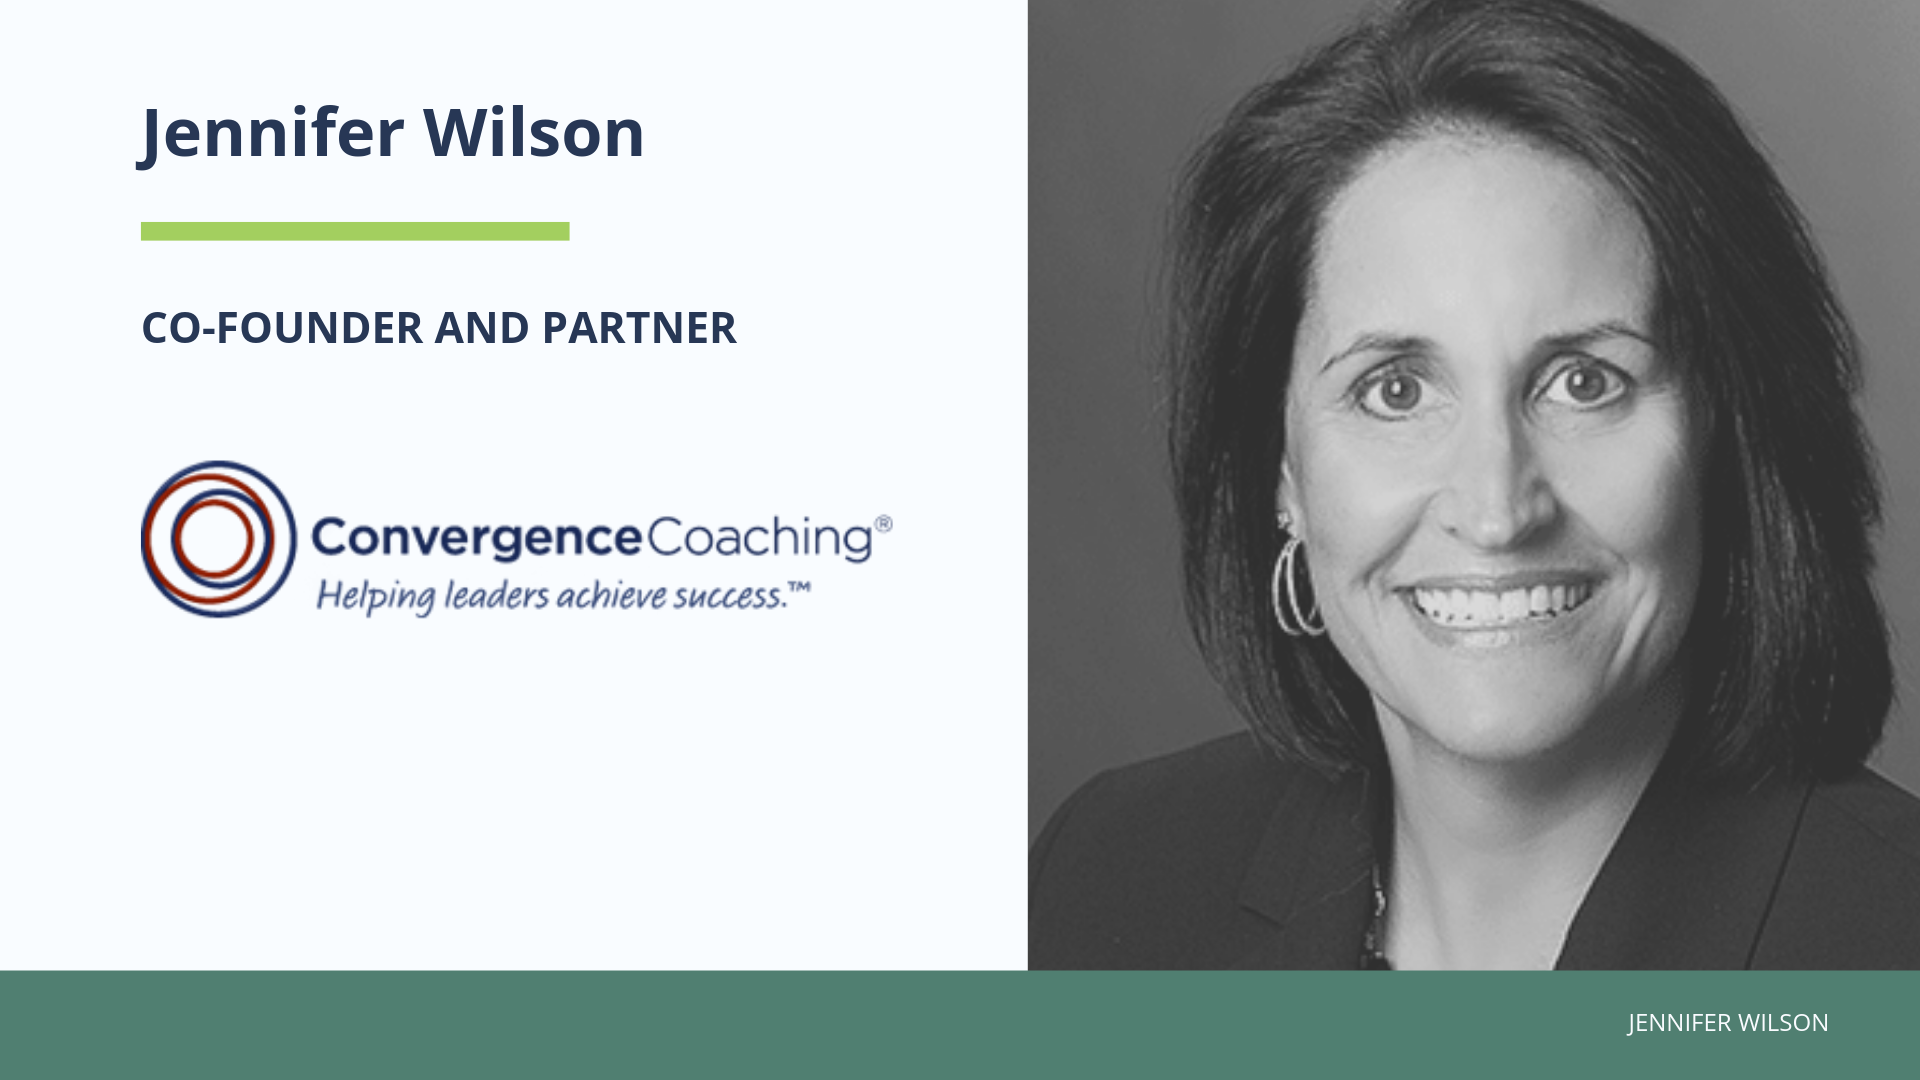 ConvergenceCoaching Partner and Co-Founder Jennifer Wilson Inducted into CPA Practice Advisor Accounting Hall of Fame